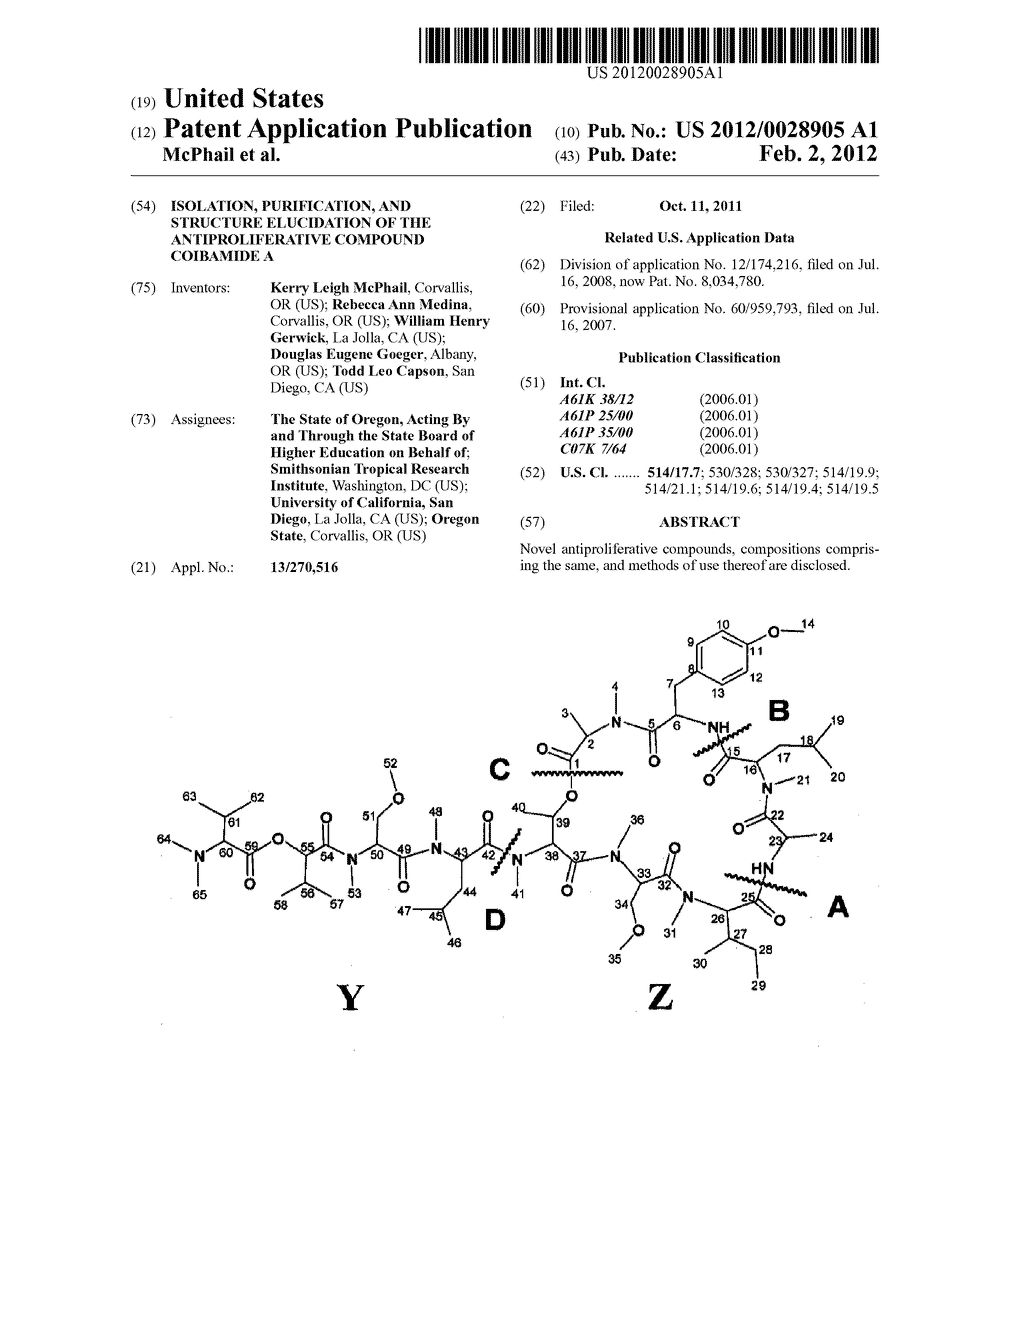 Isolation, Purification, and Structure Elucidation of the     Antiproliferative Compound Coibamide A - diagram, schematic, and image 01